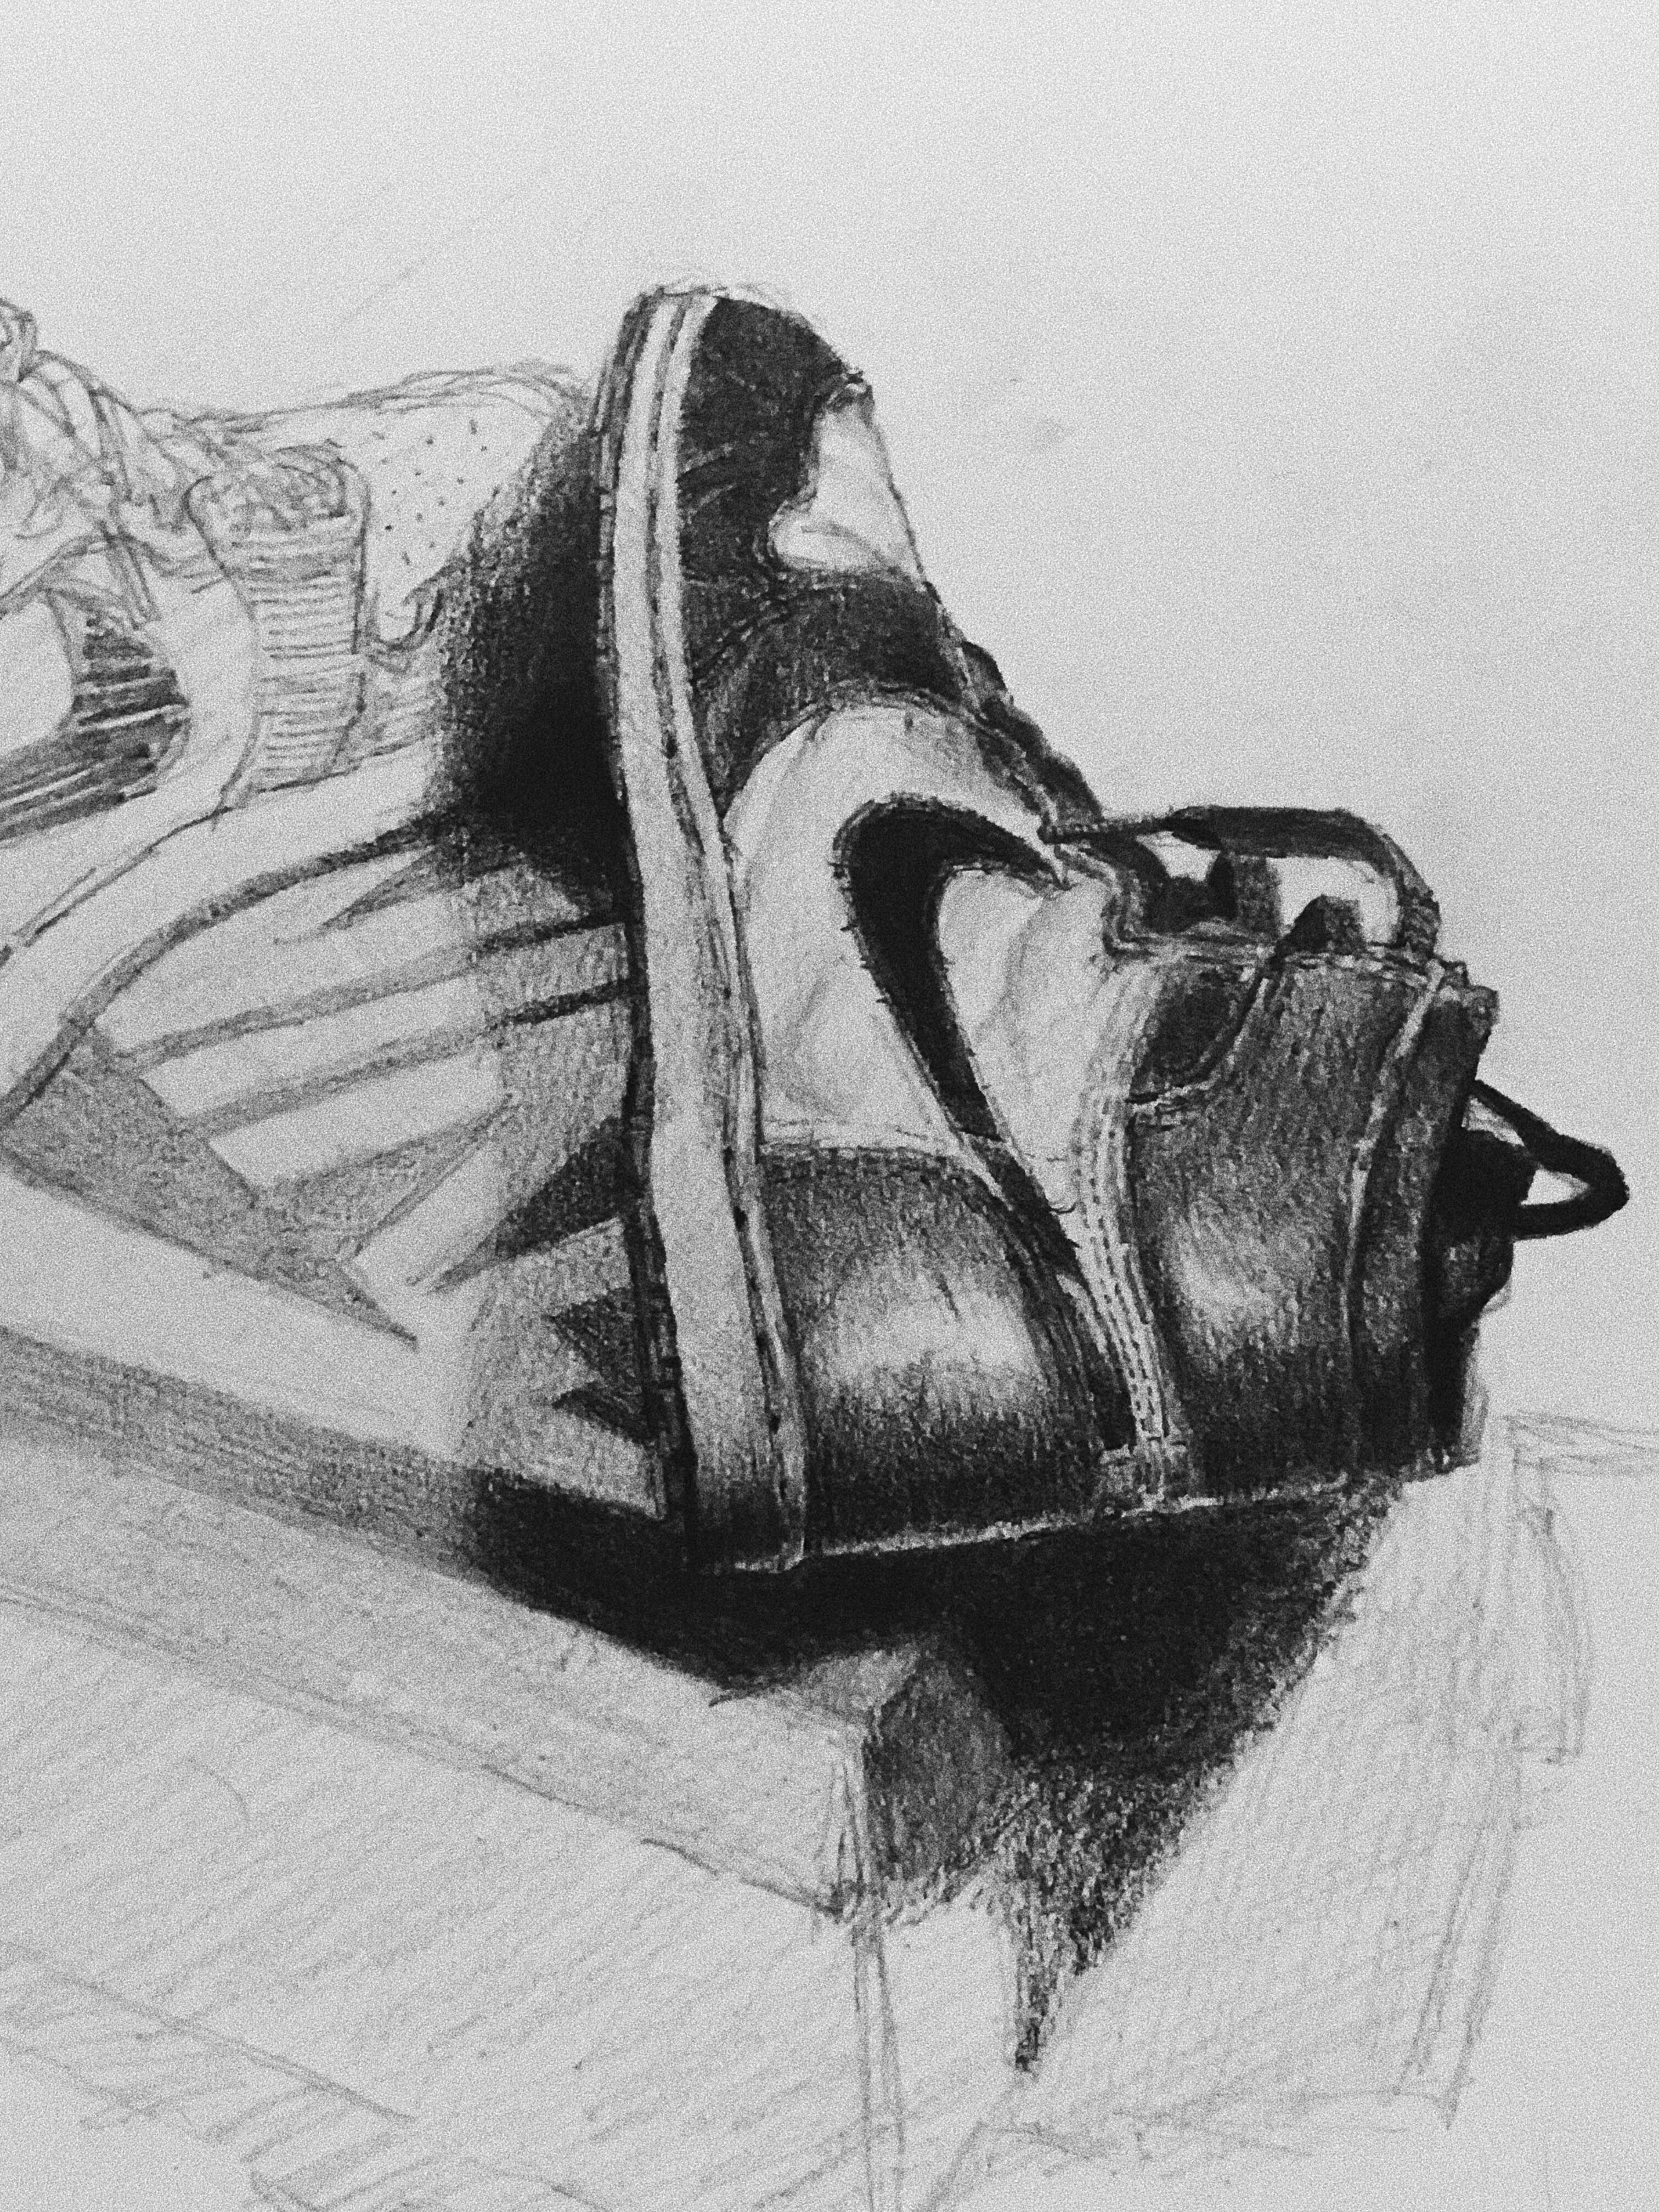 Drawing Jordans : drawing, jordans, Drawing, Jordans, Assignment, Sneakers